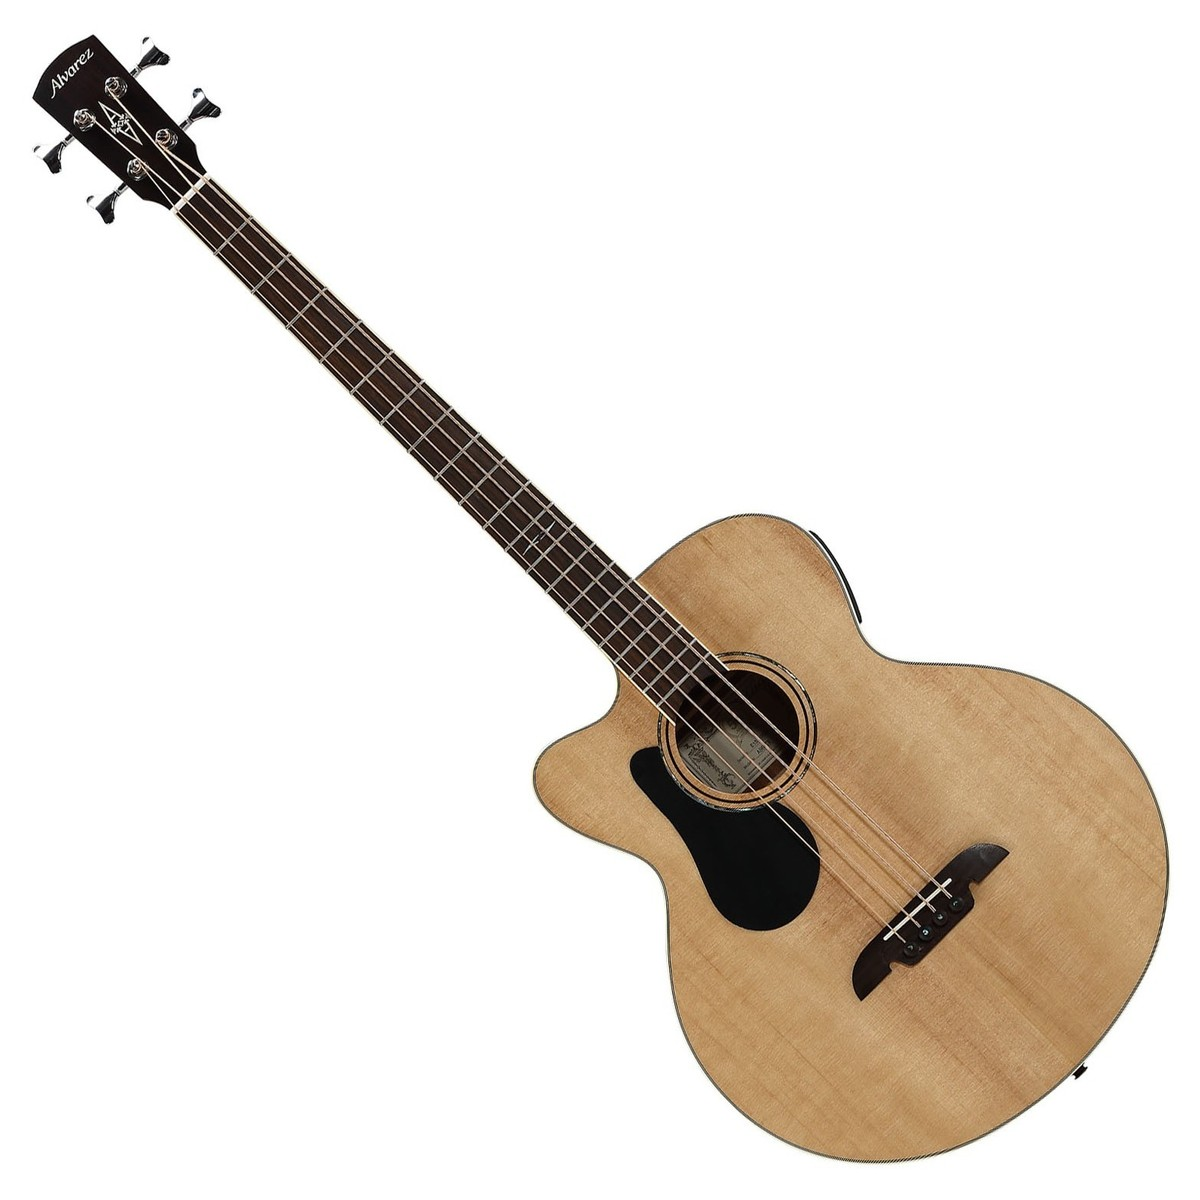 disc alvarez ab60lce left handed electro acoustic bass guitar at gear4music. Black Bedroom Furniture Sets. Home Design Ideas